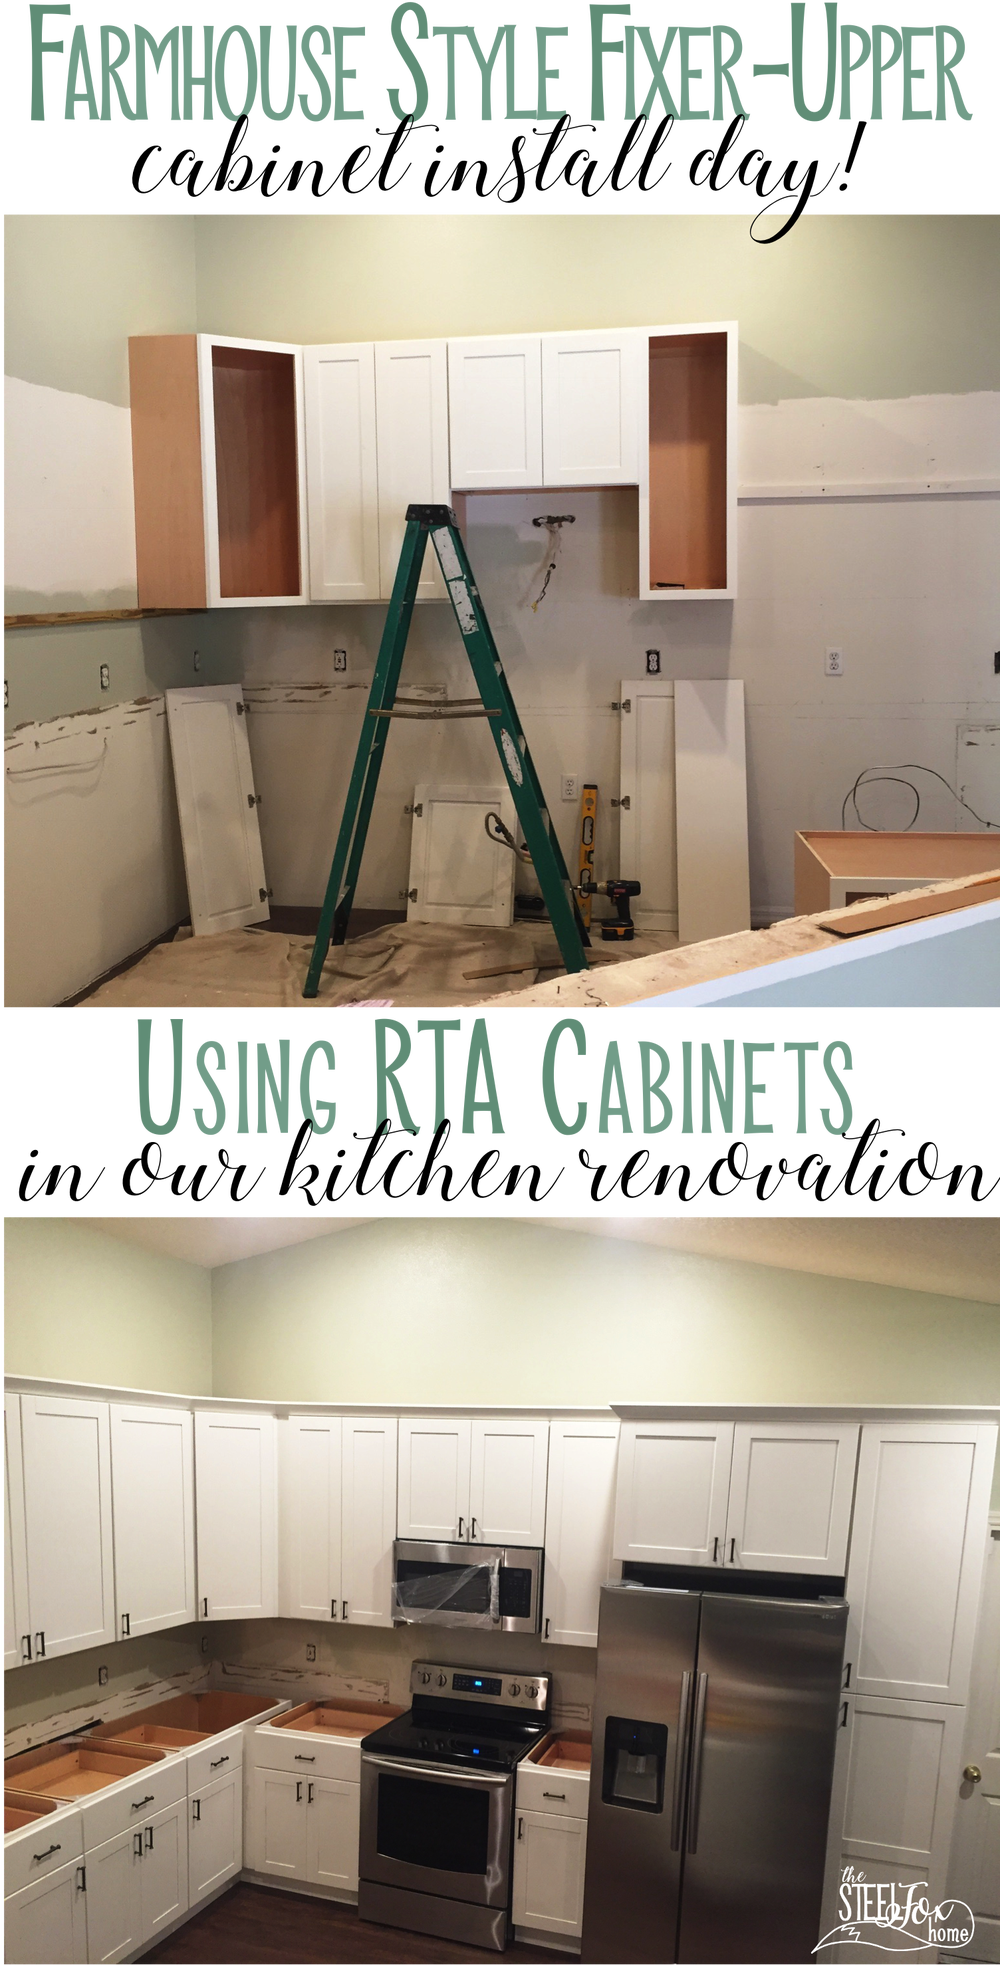 Finally getting kitchen cabinets installed in our fixer upper